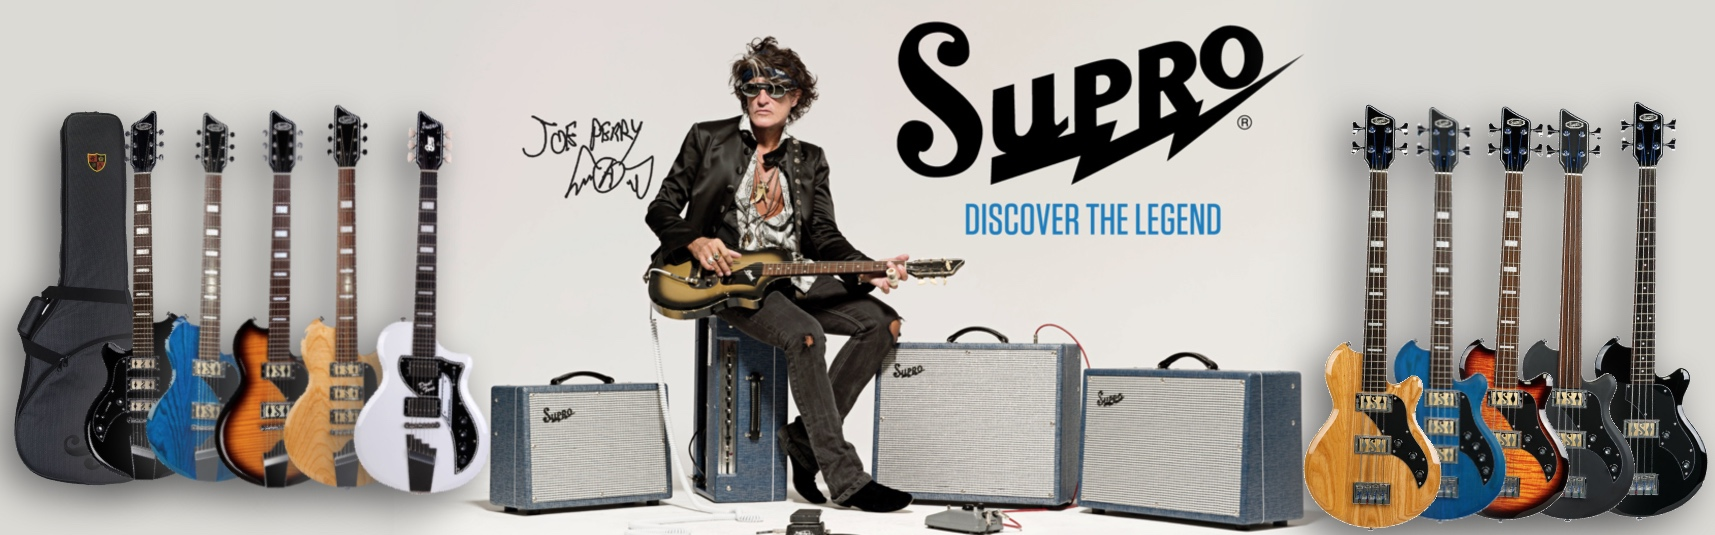 Supro Guitars and Amplifiers